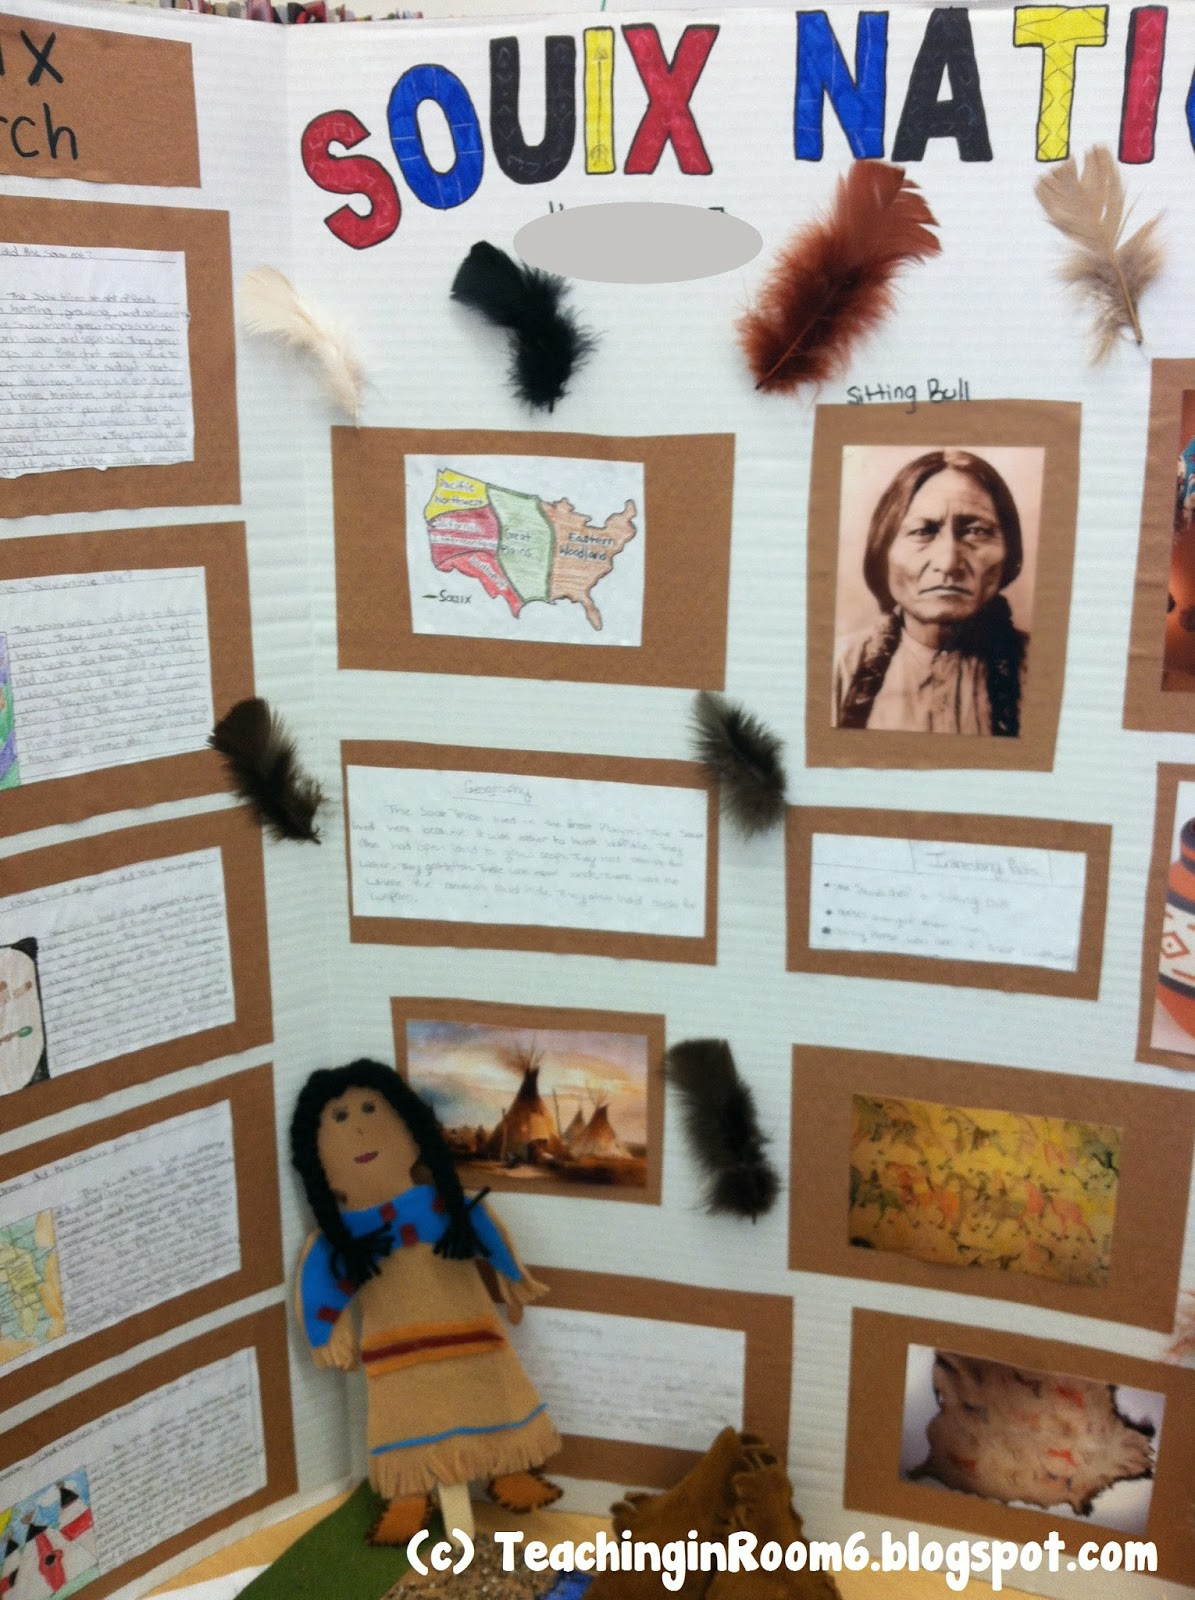 Doing a Native American museum requires the students to do research, make crafts, create clothing, build a home, and generally learn a LOT about the Pre-Columbian Native Americans living in the area.